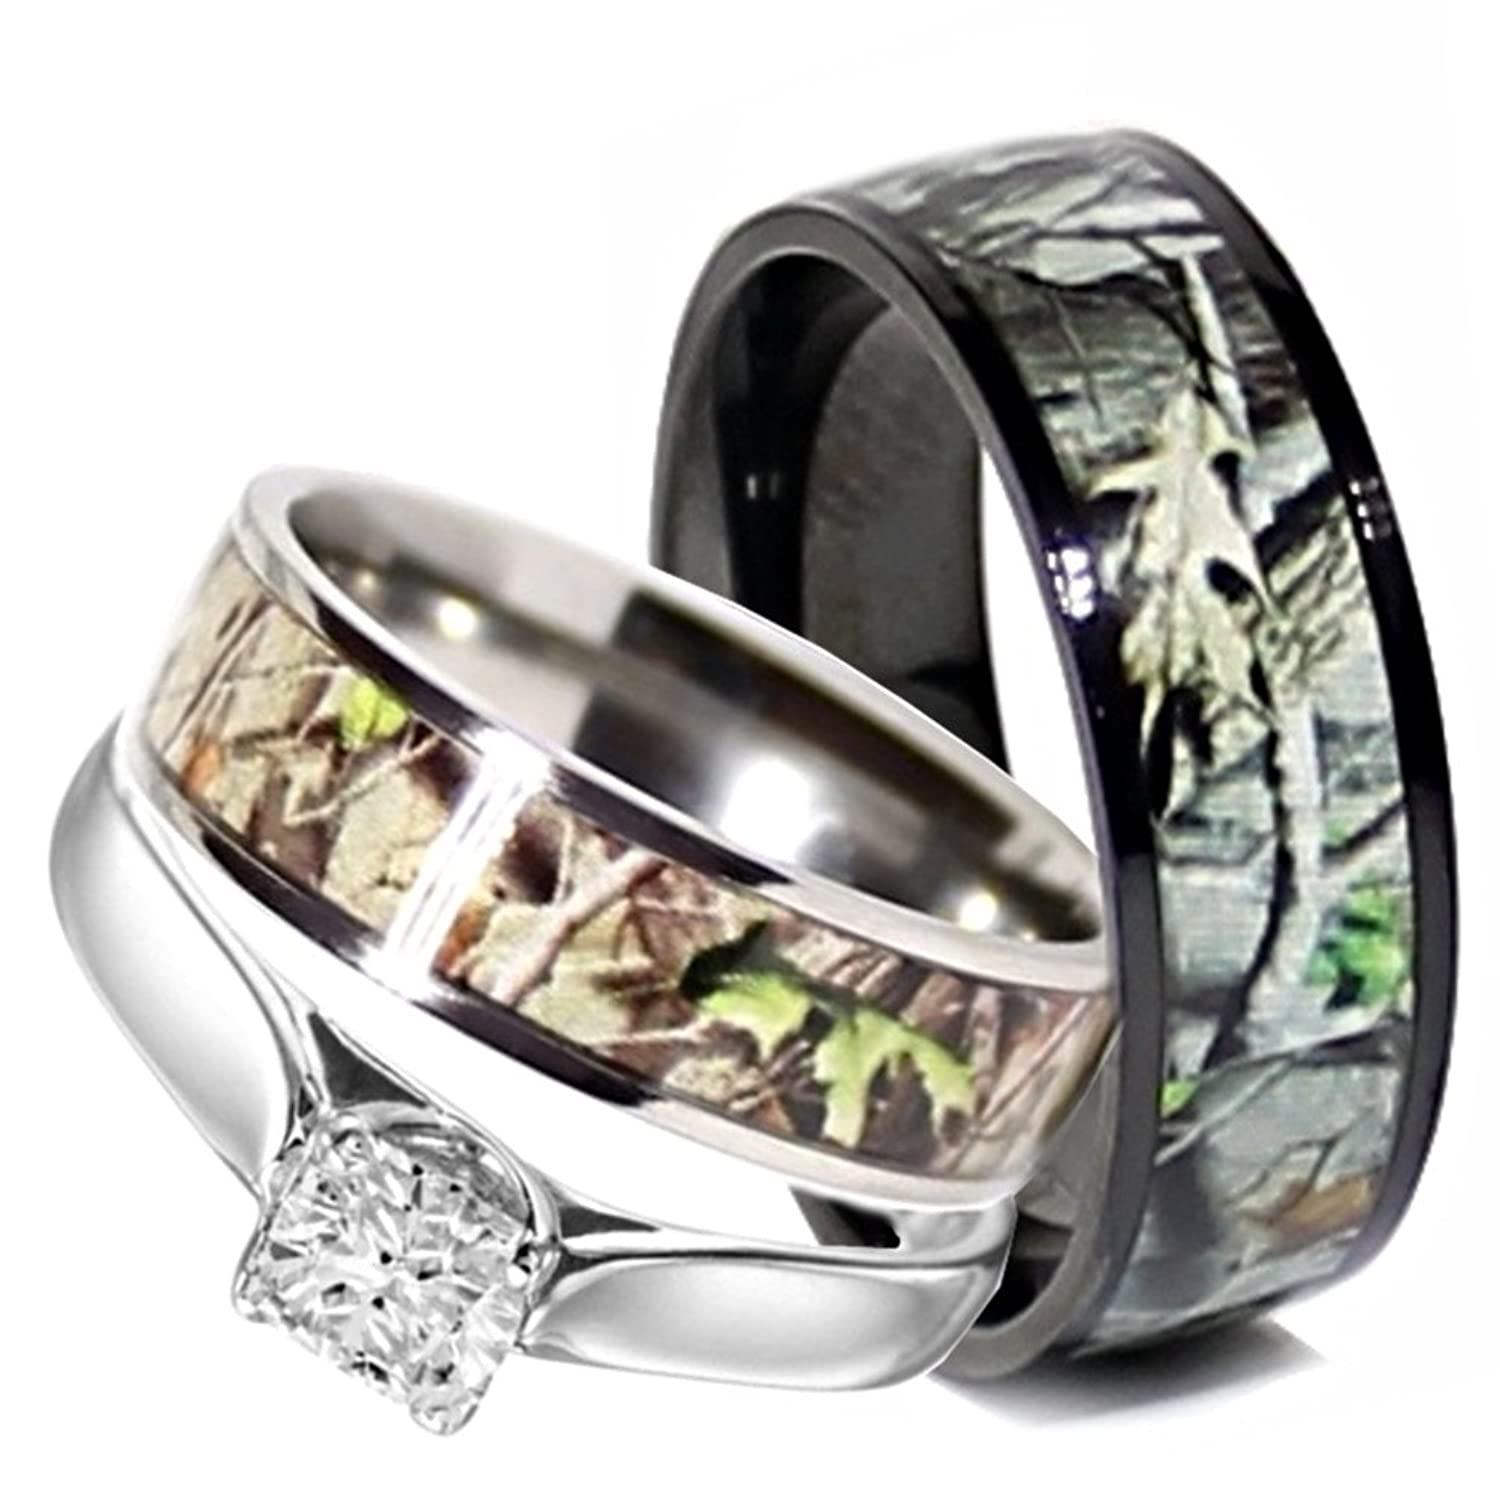 Camo Wedding Rings Set His and Hers 3 Rings Set, Sterling Silver and ...